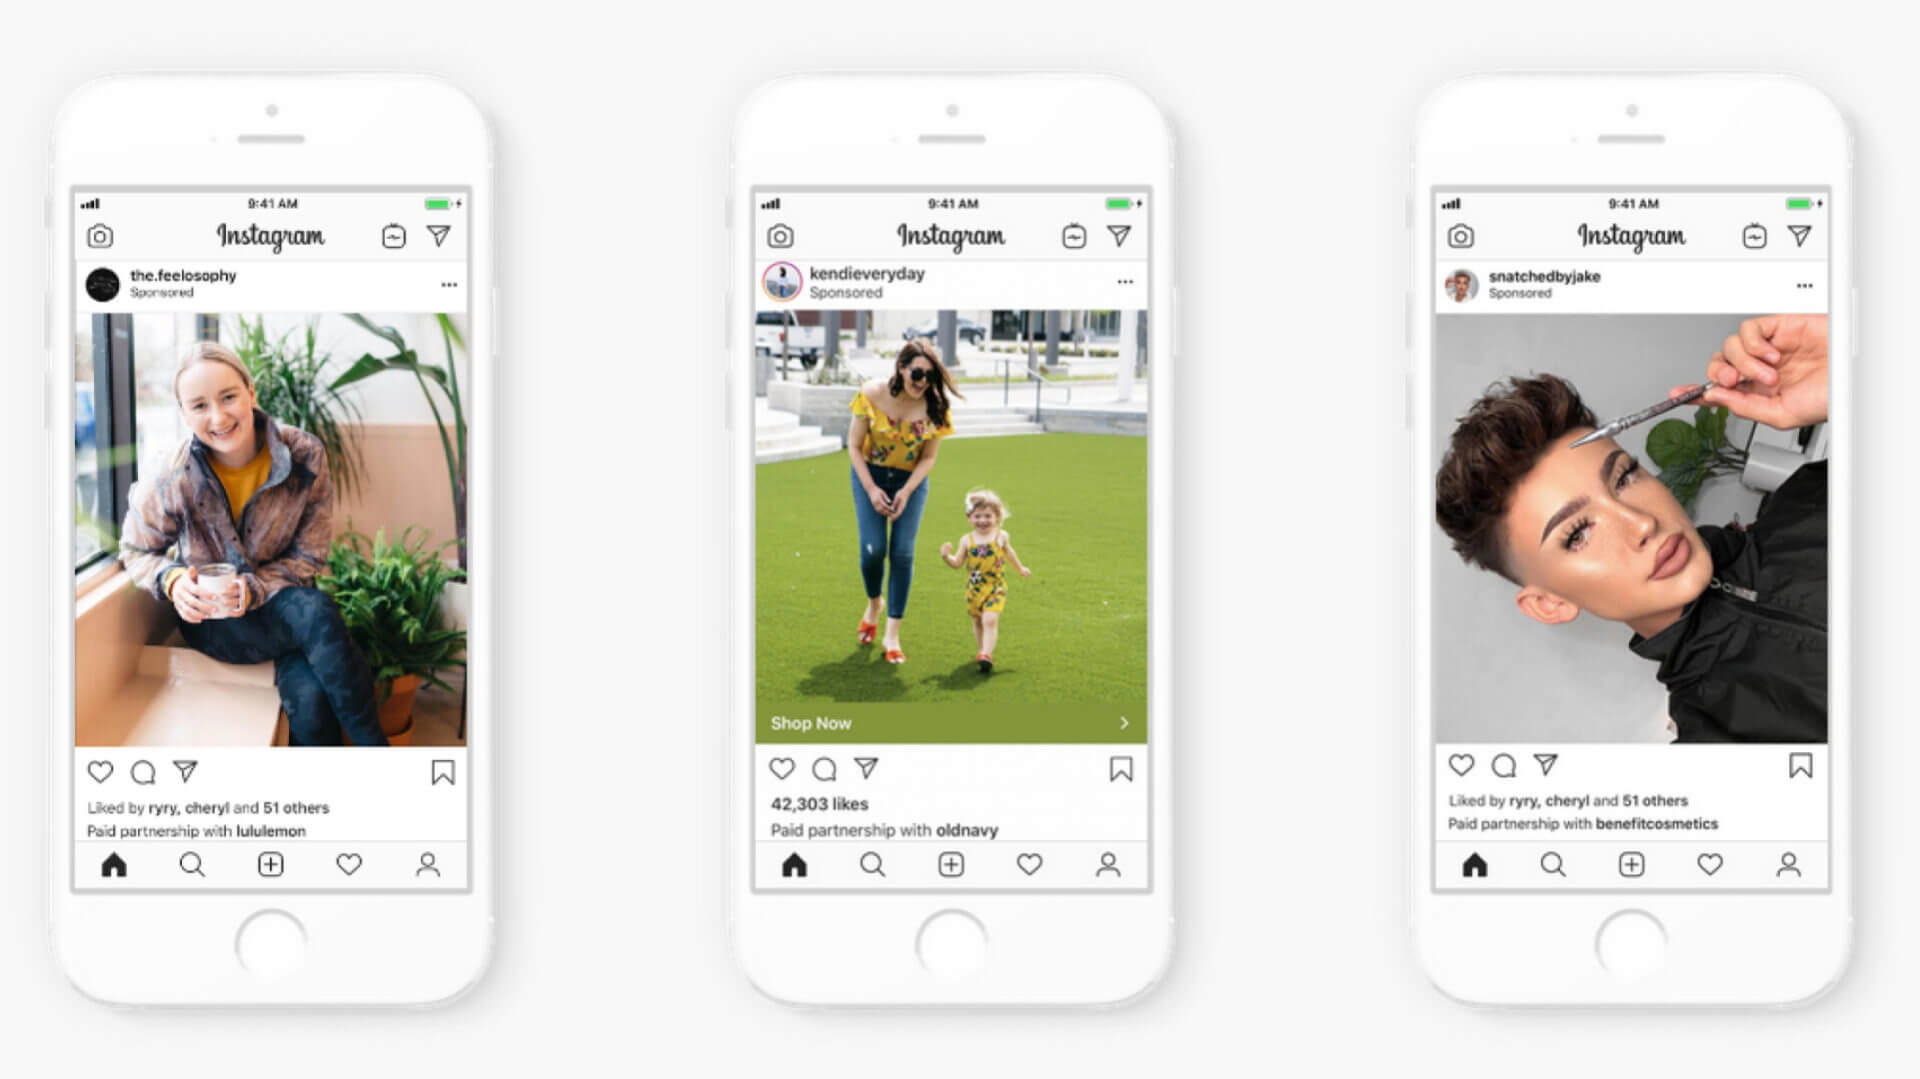 Has Instagram increased its ad load? Marketers report as many as 1 in 4 posts are ads